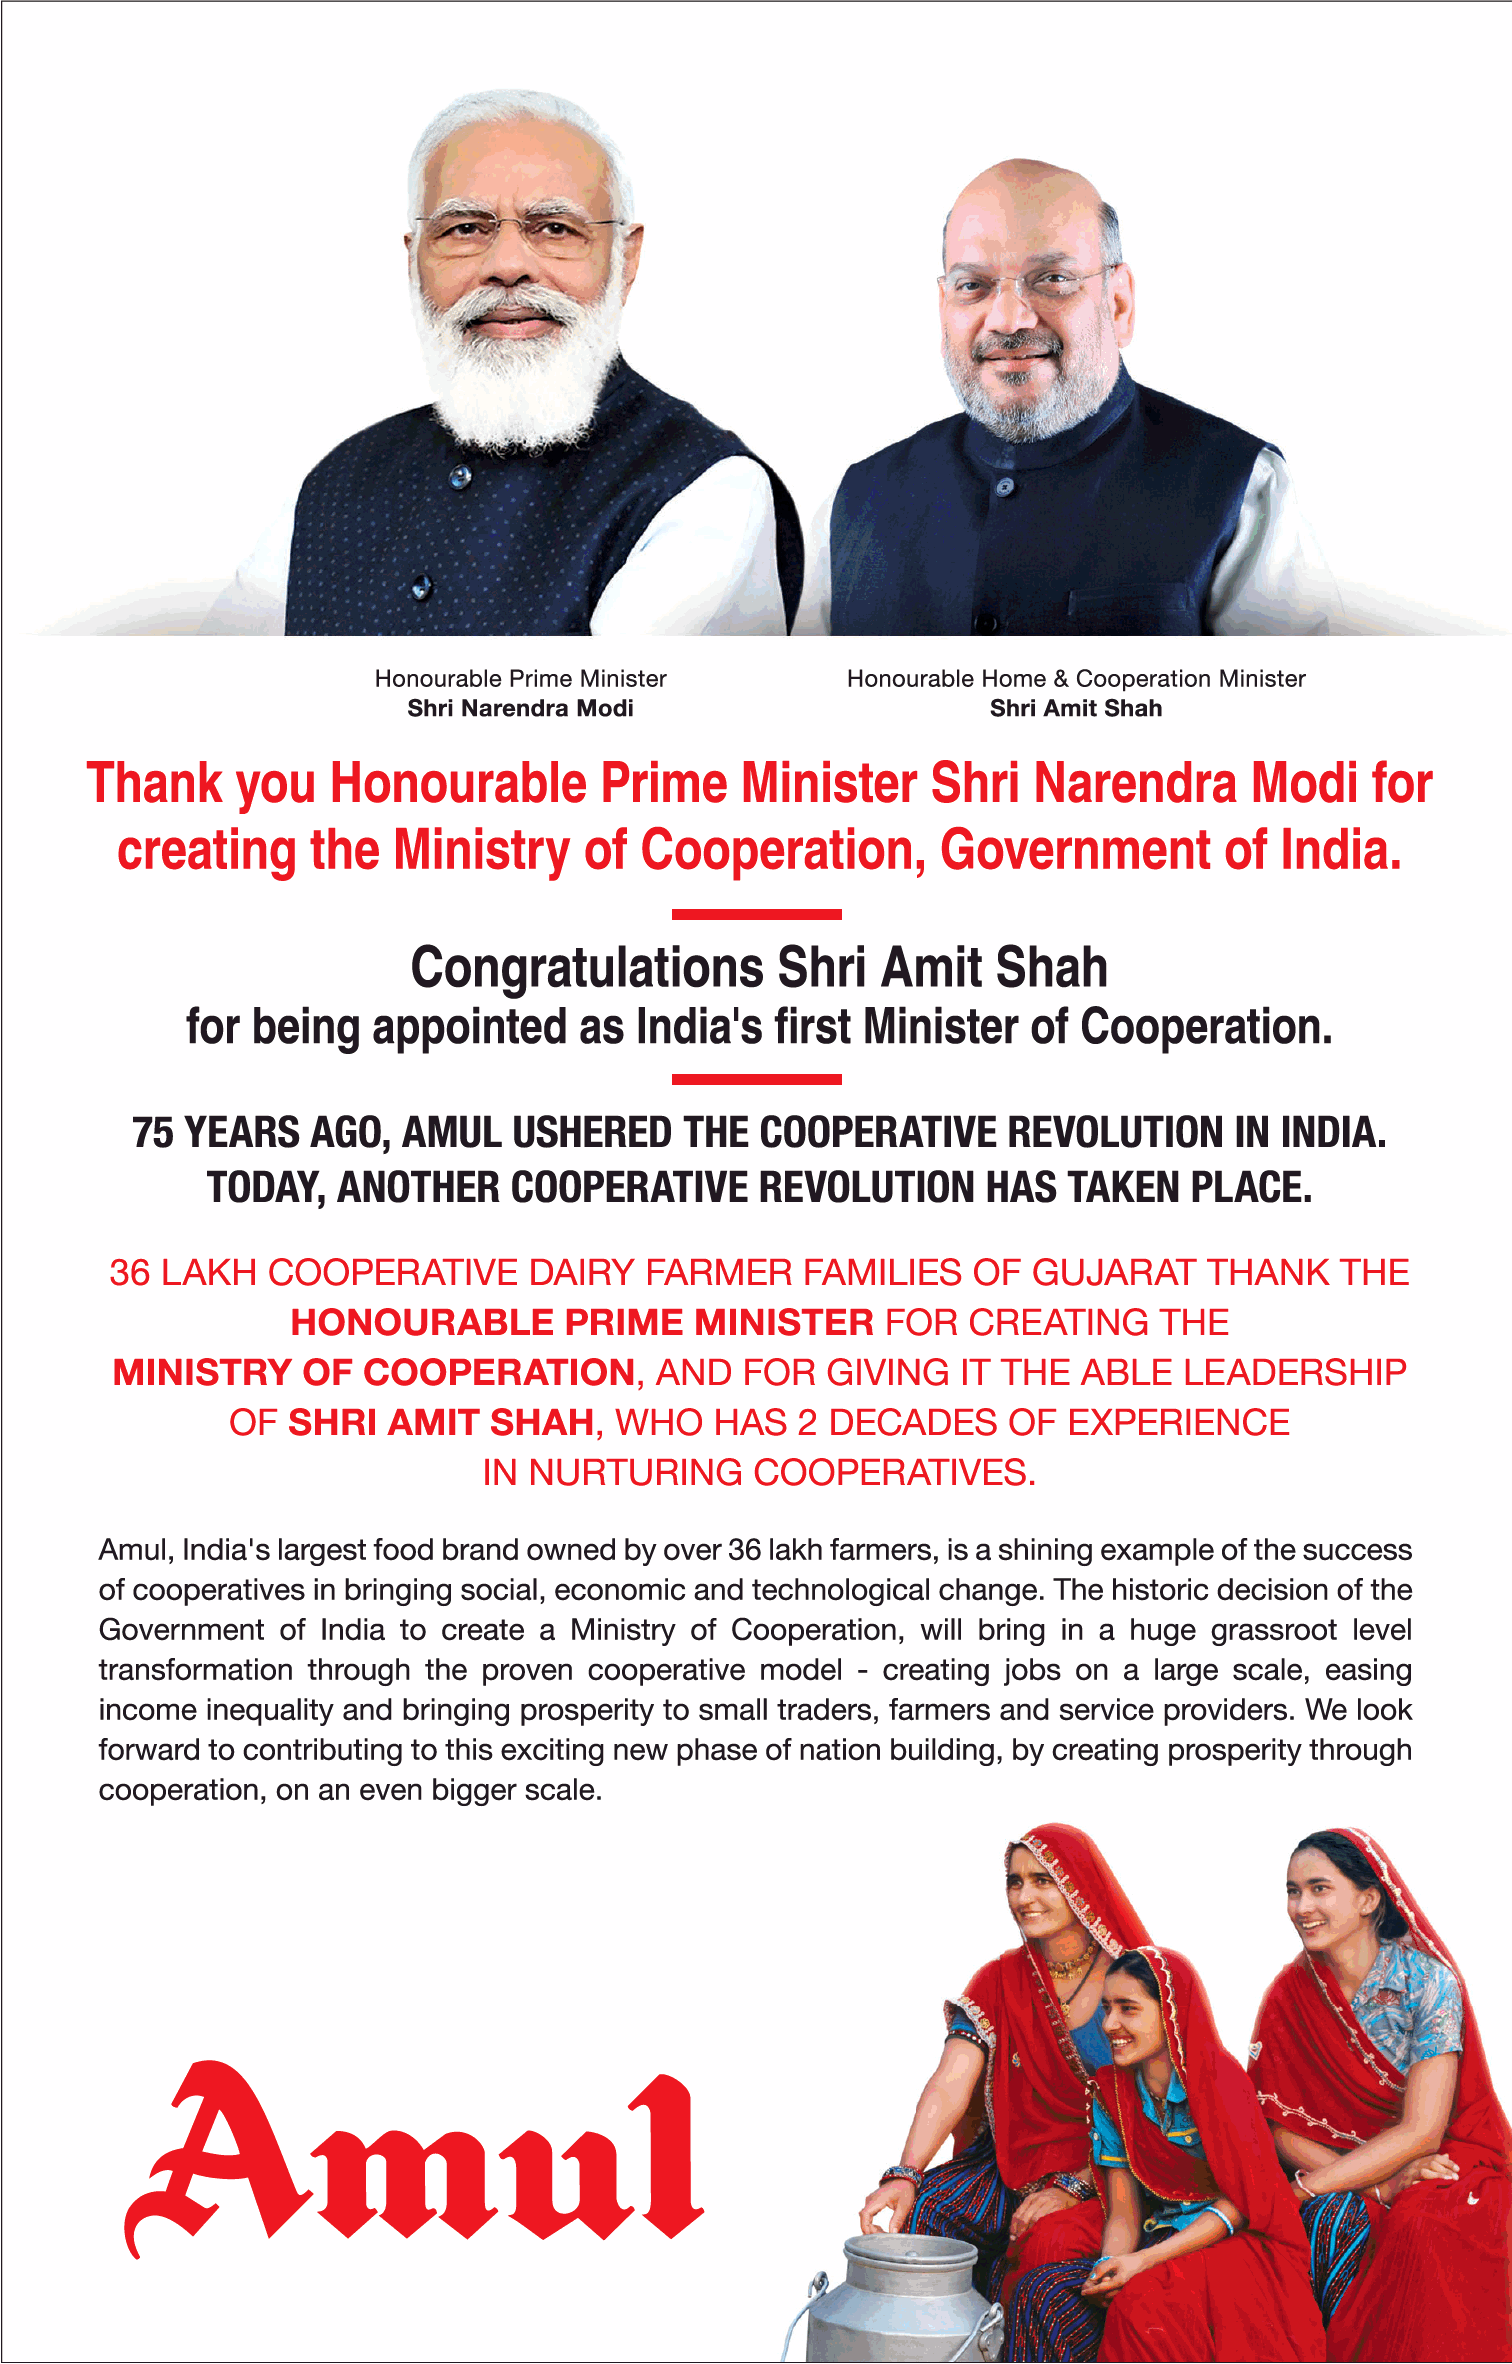 Amul Thanks Honourable Prime Minister Of India For Creating Ministry Of Cooperation